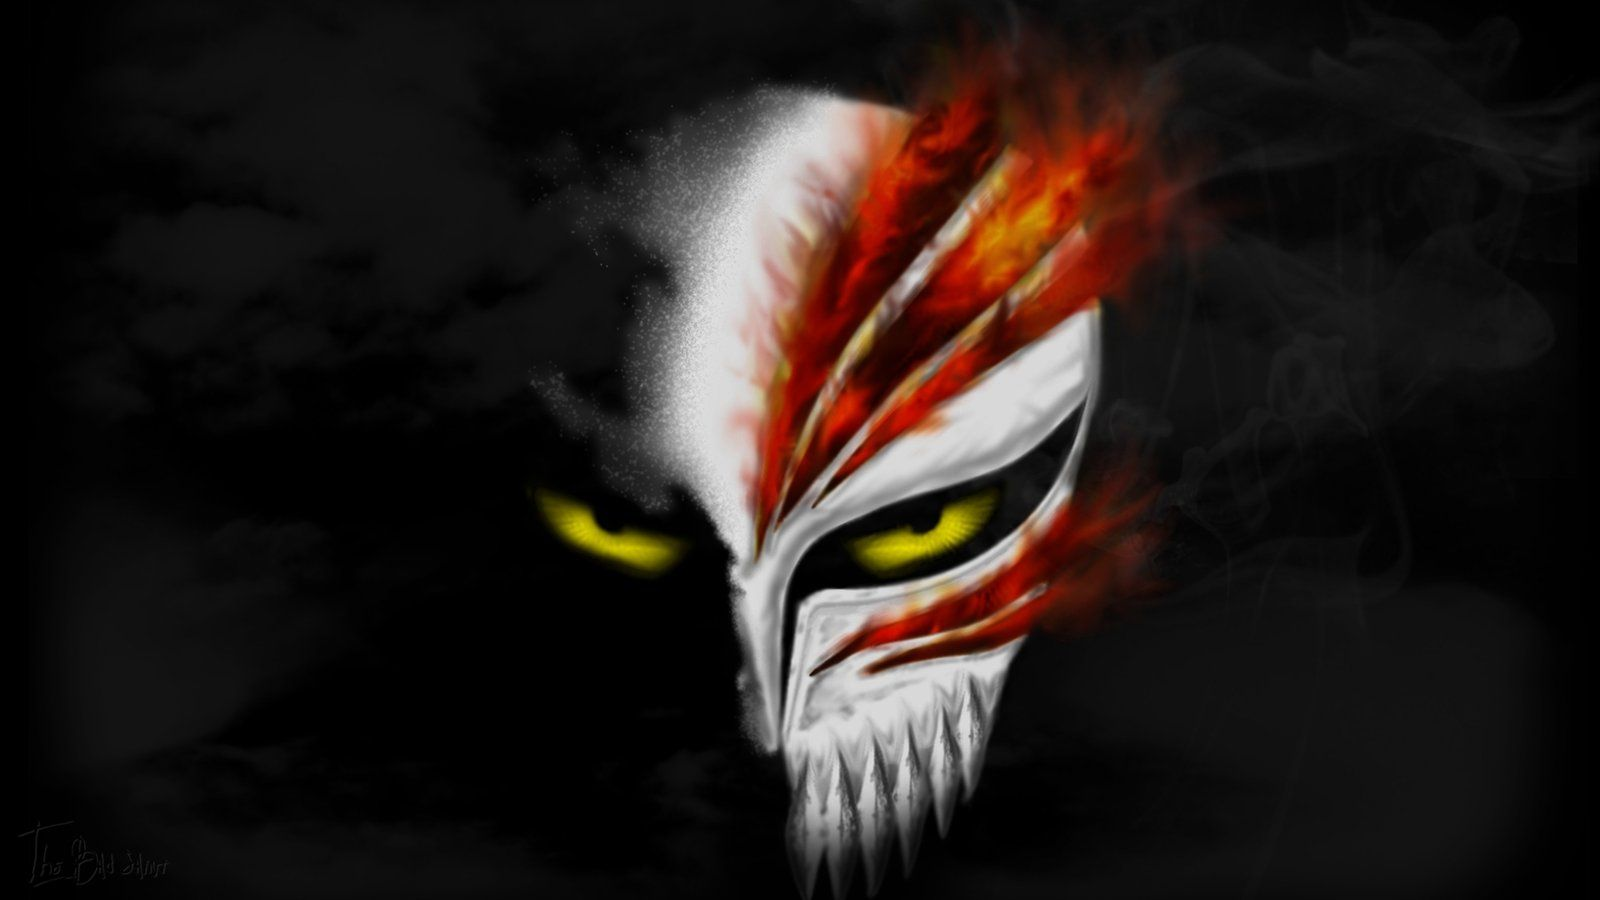 Black Ops Wallpaper Hd Bleach Hollow Mask Wallpapers 47 Wallpapers Adorable